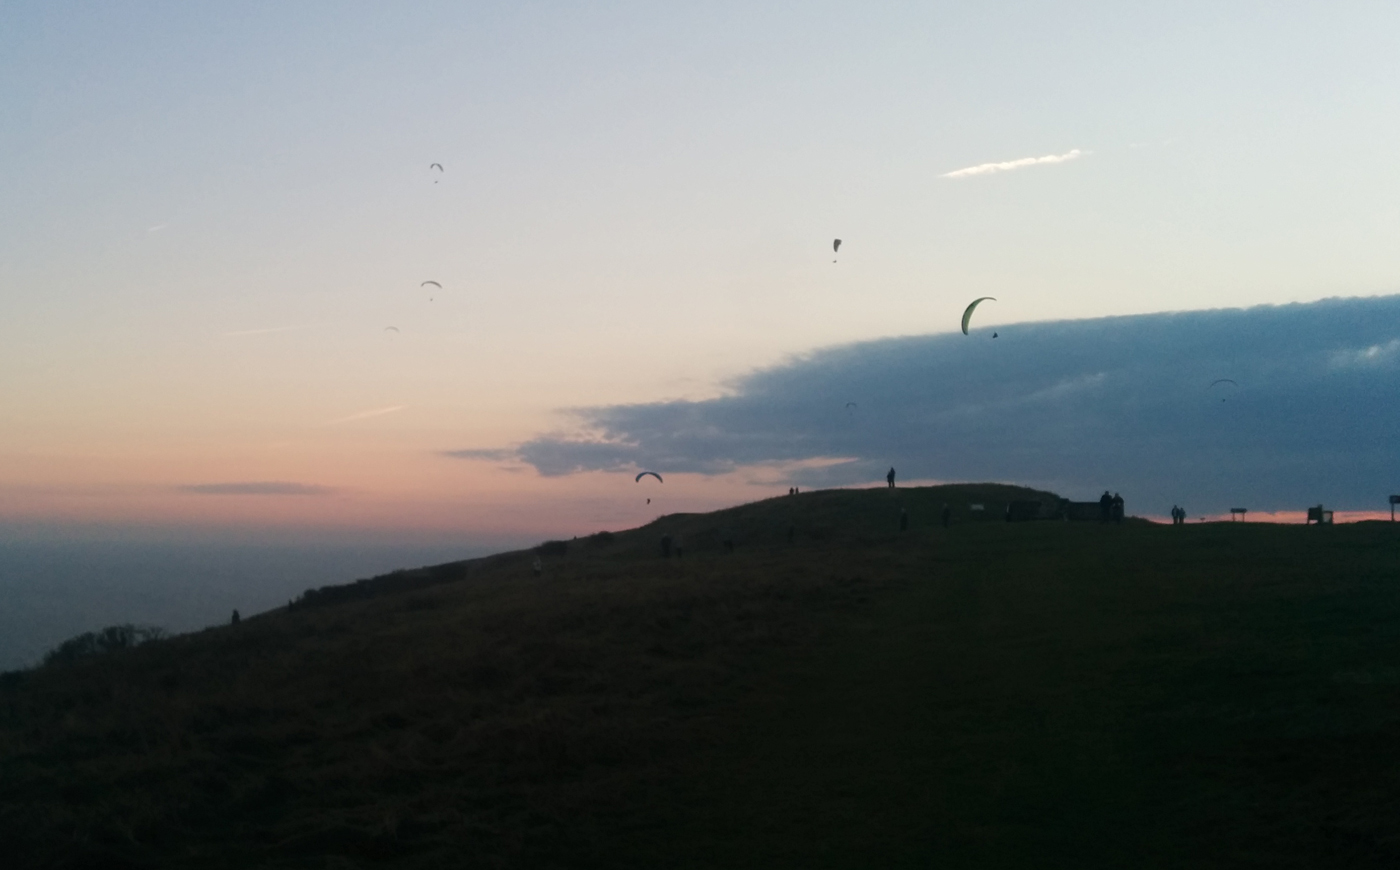 Paragliders still out